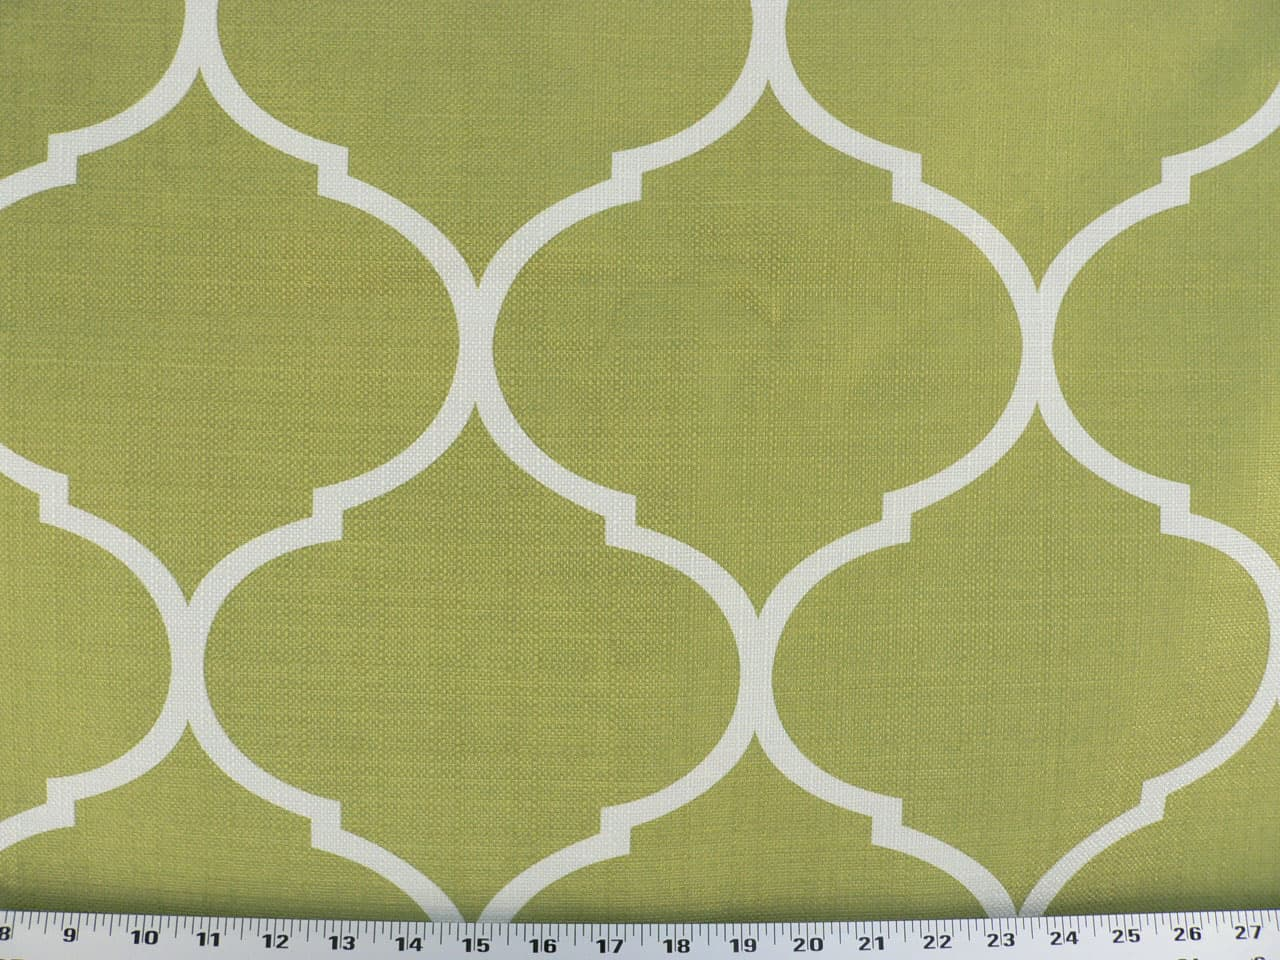 Slipcover fabric by the yard - Moorish Kiwi Best Fabric Store Online Drapery And Upholstery Fabric Superstore